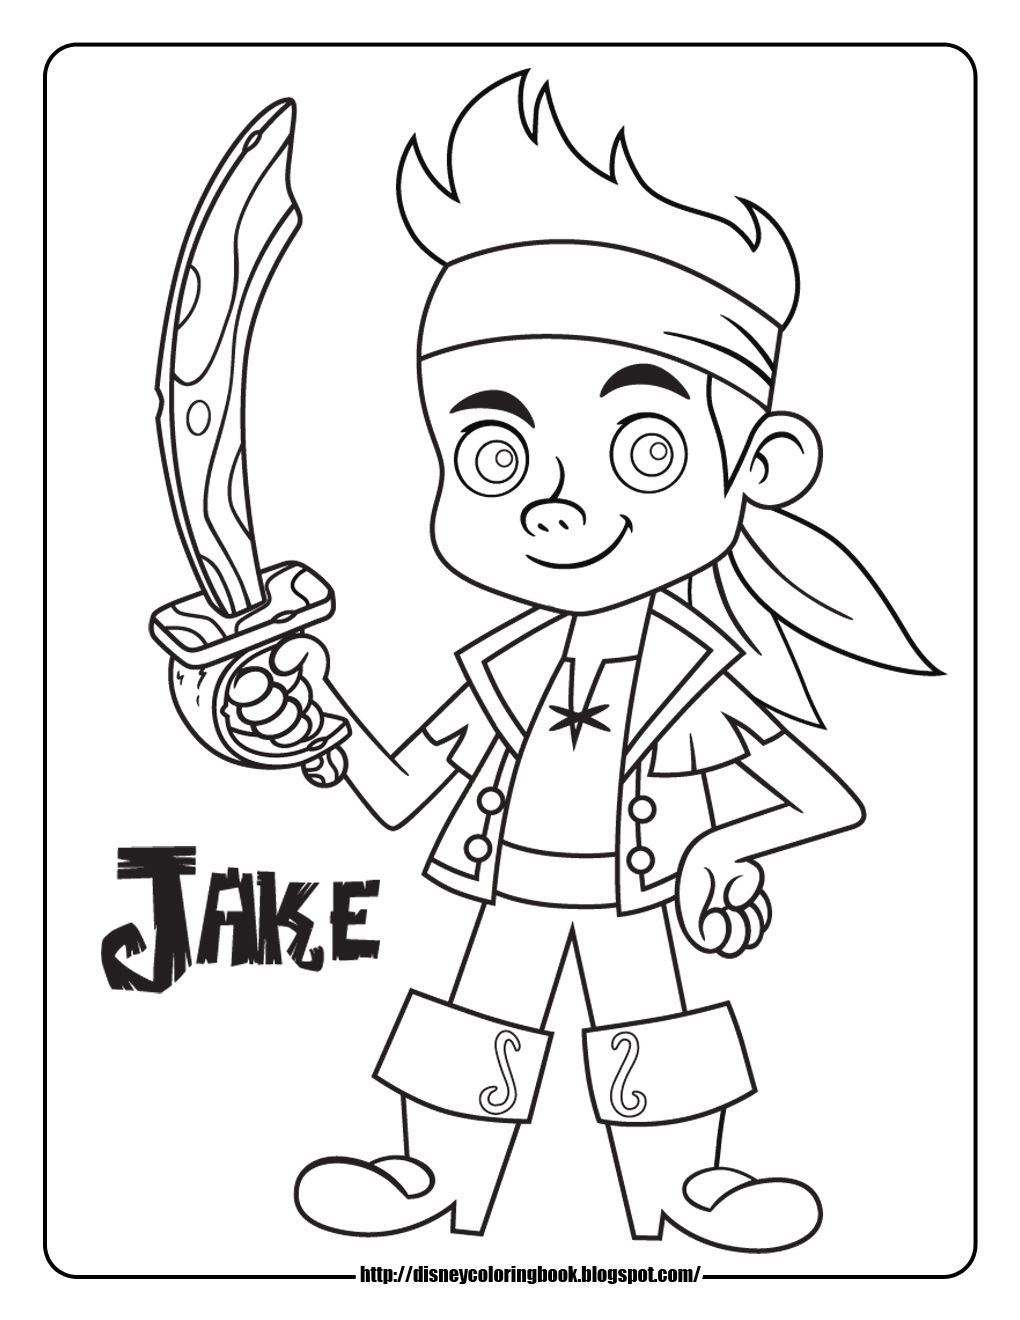 Jake and the Neverland Pirates Coloring Pages  to Print 10g - Save it to your computer